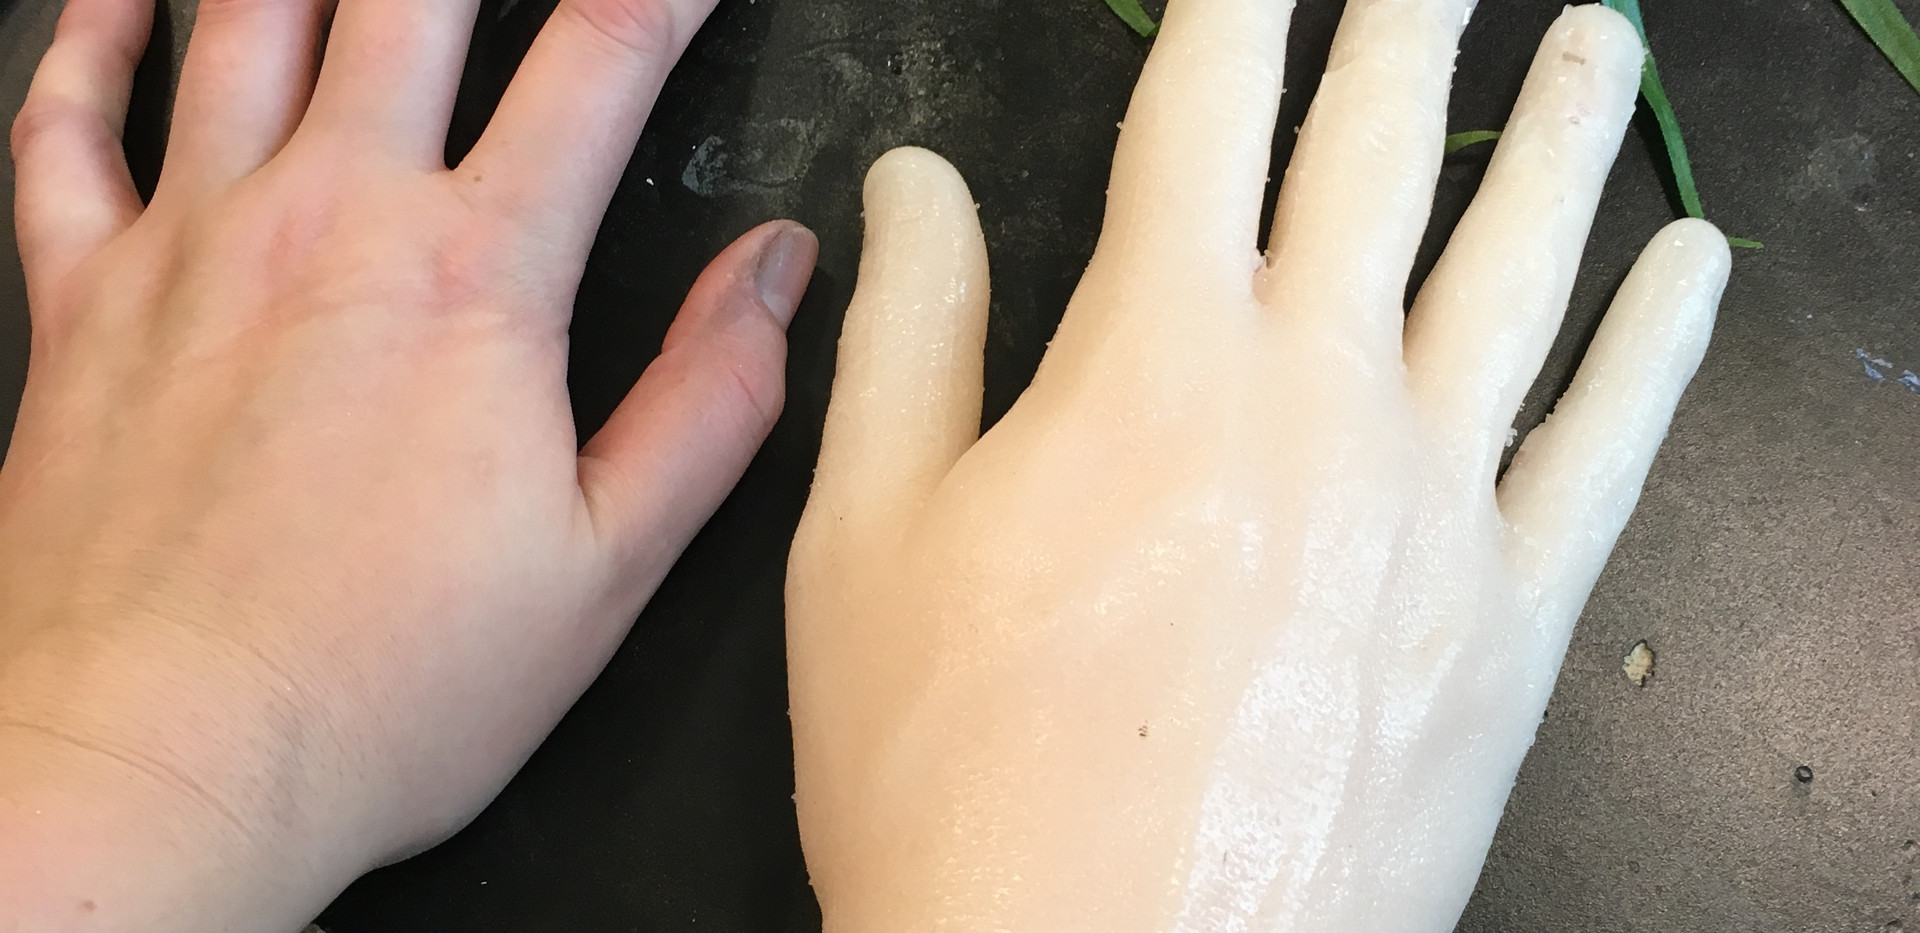 Cast of Actor's Hand in Dragonskin